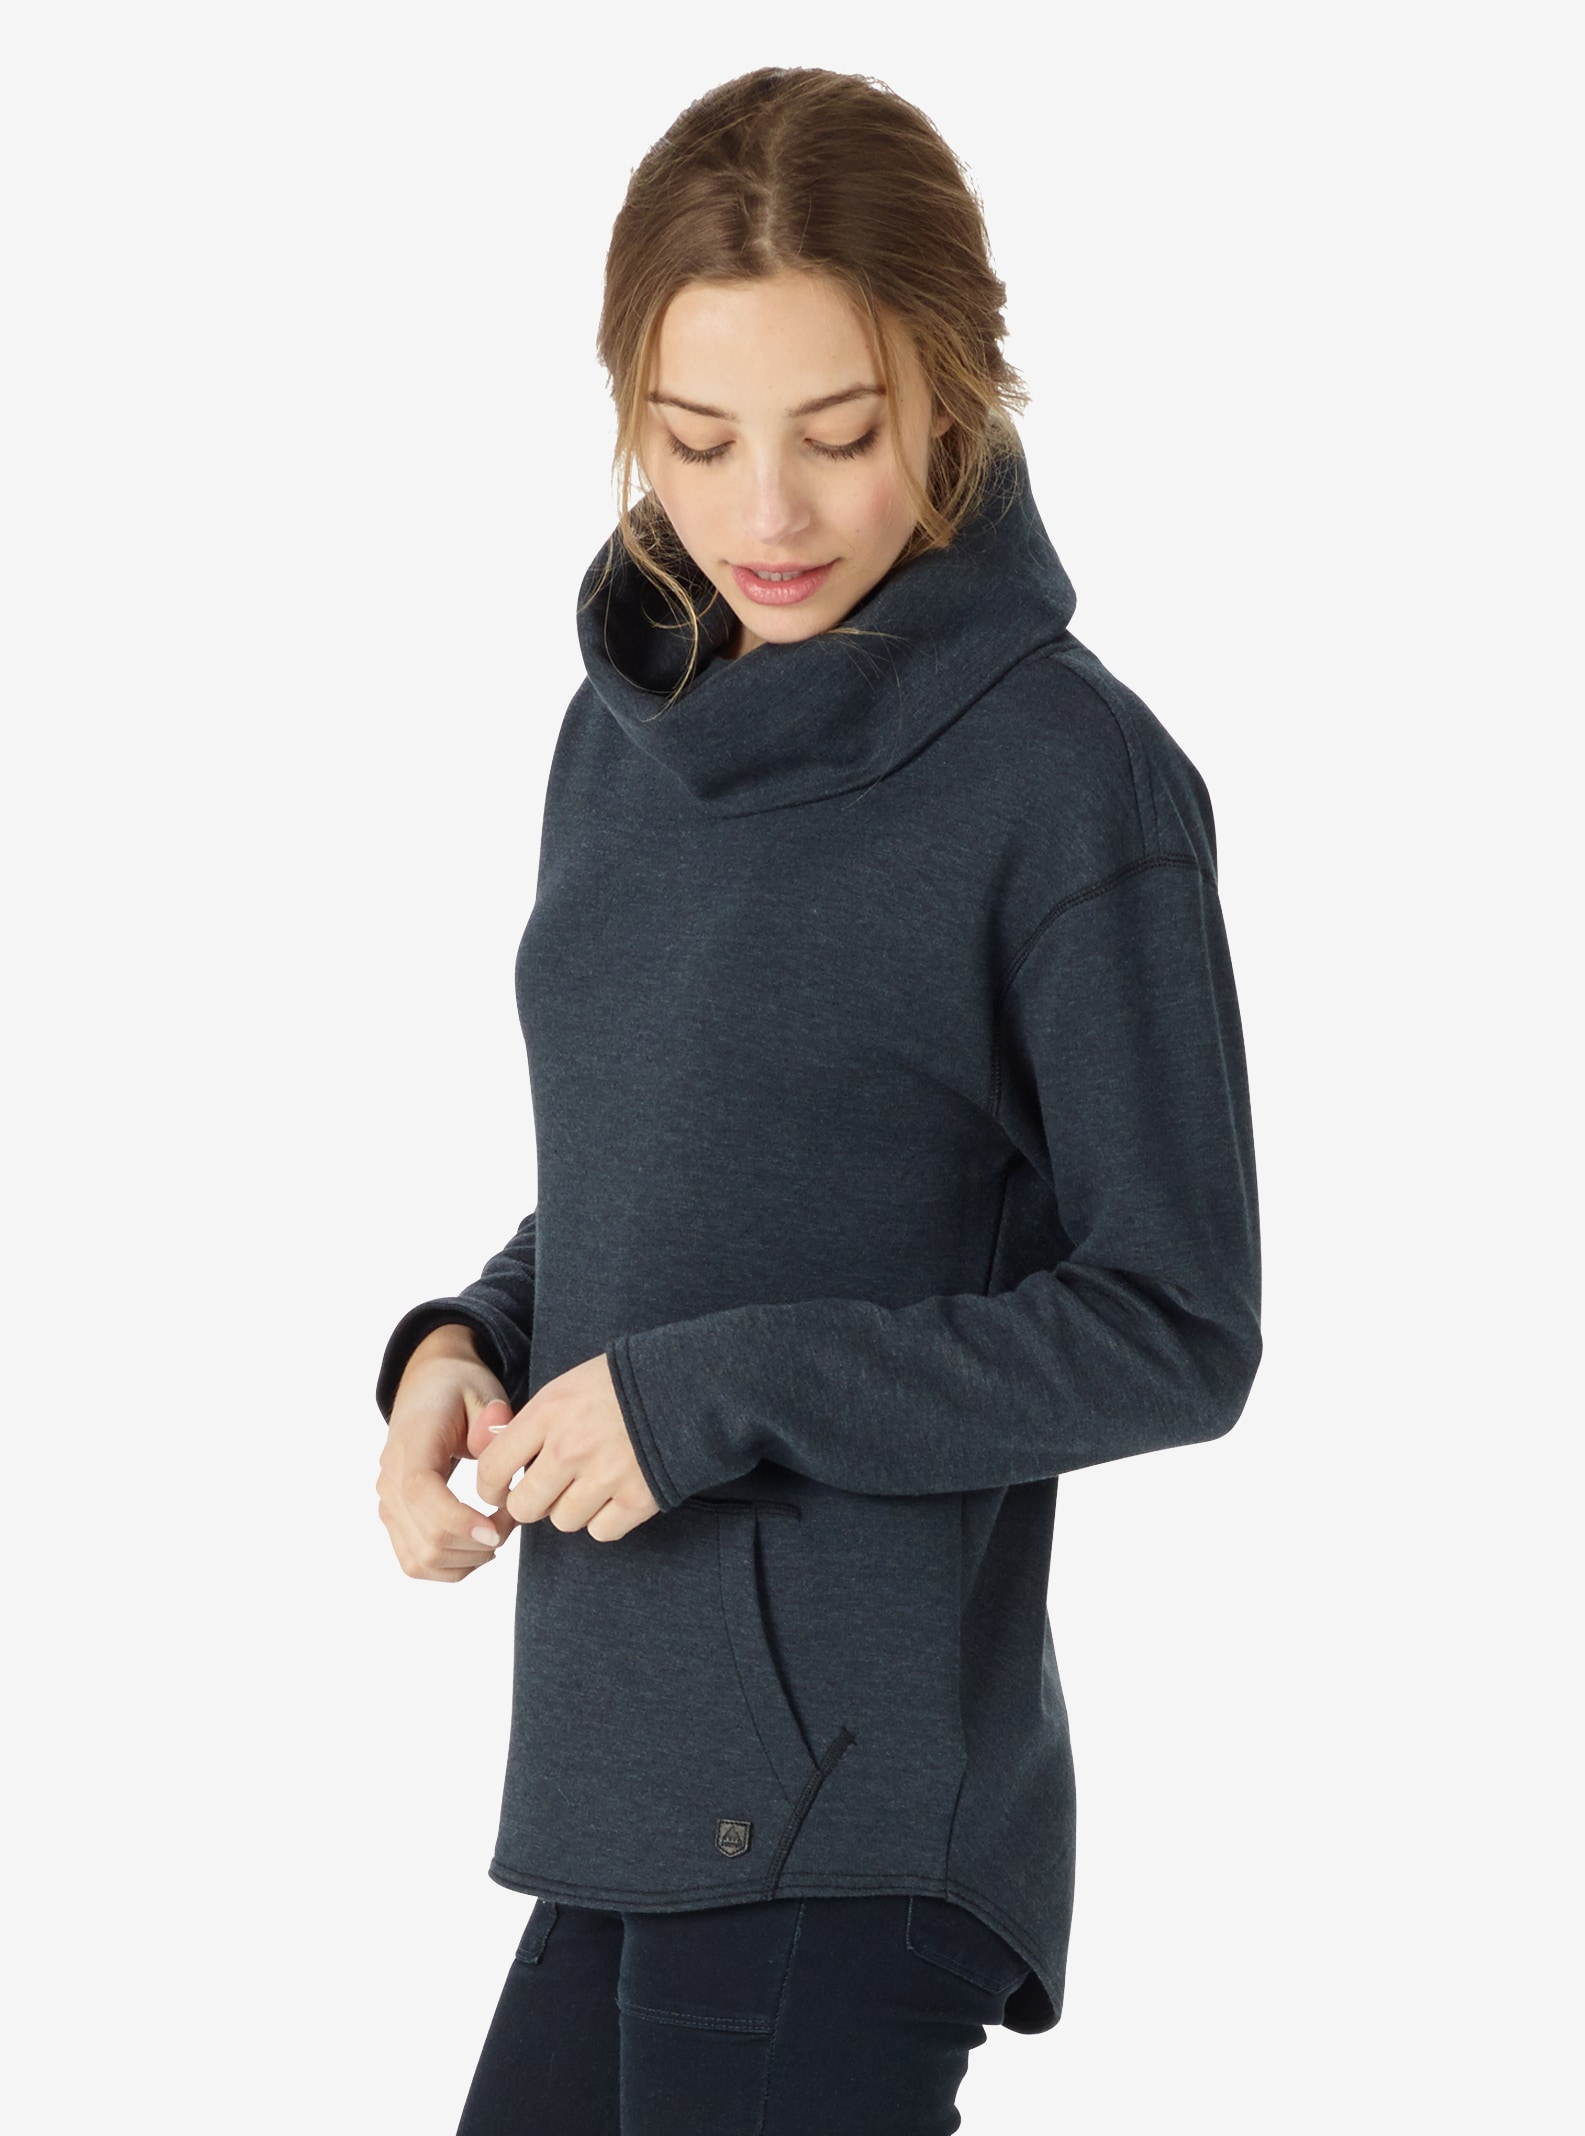 Women's Burton Ellmore Pullover shown in True Black Heather